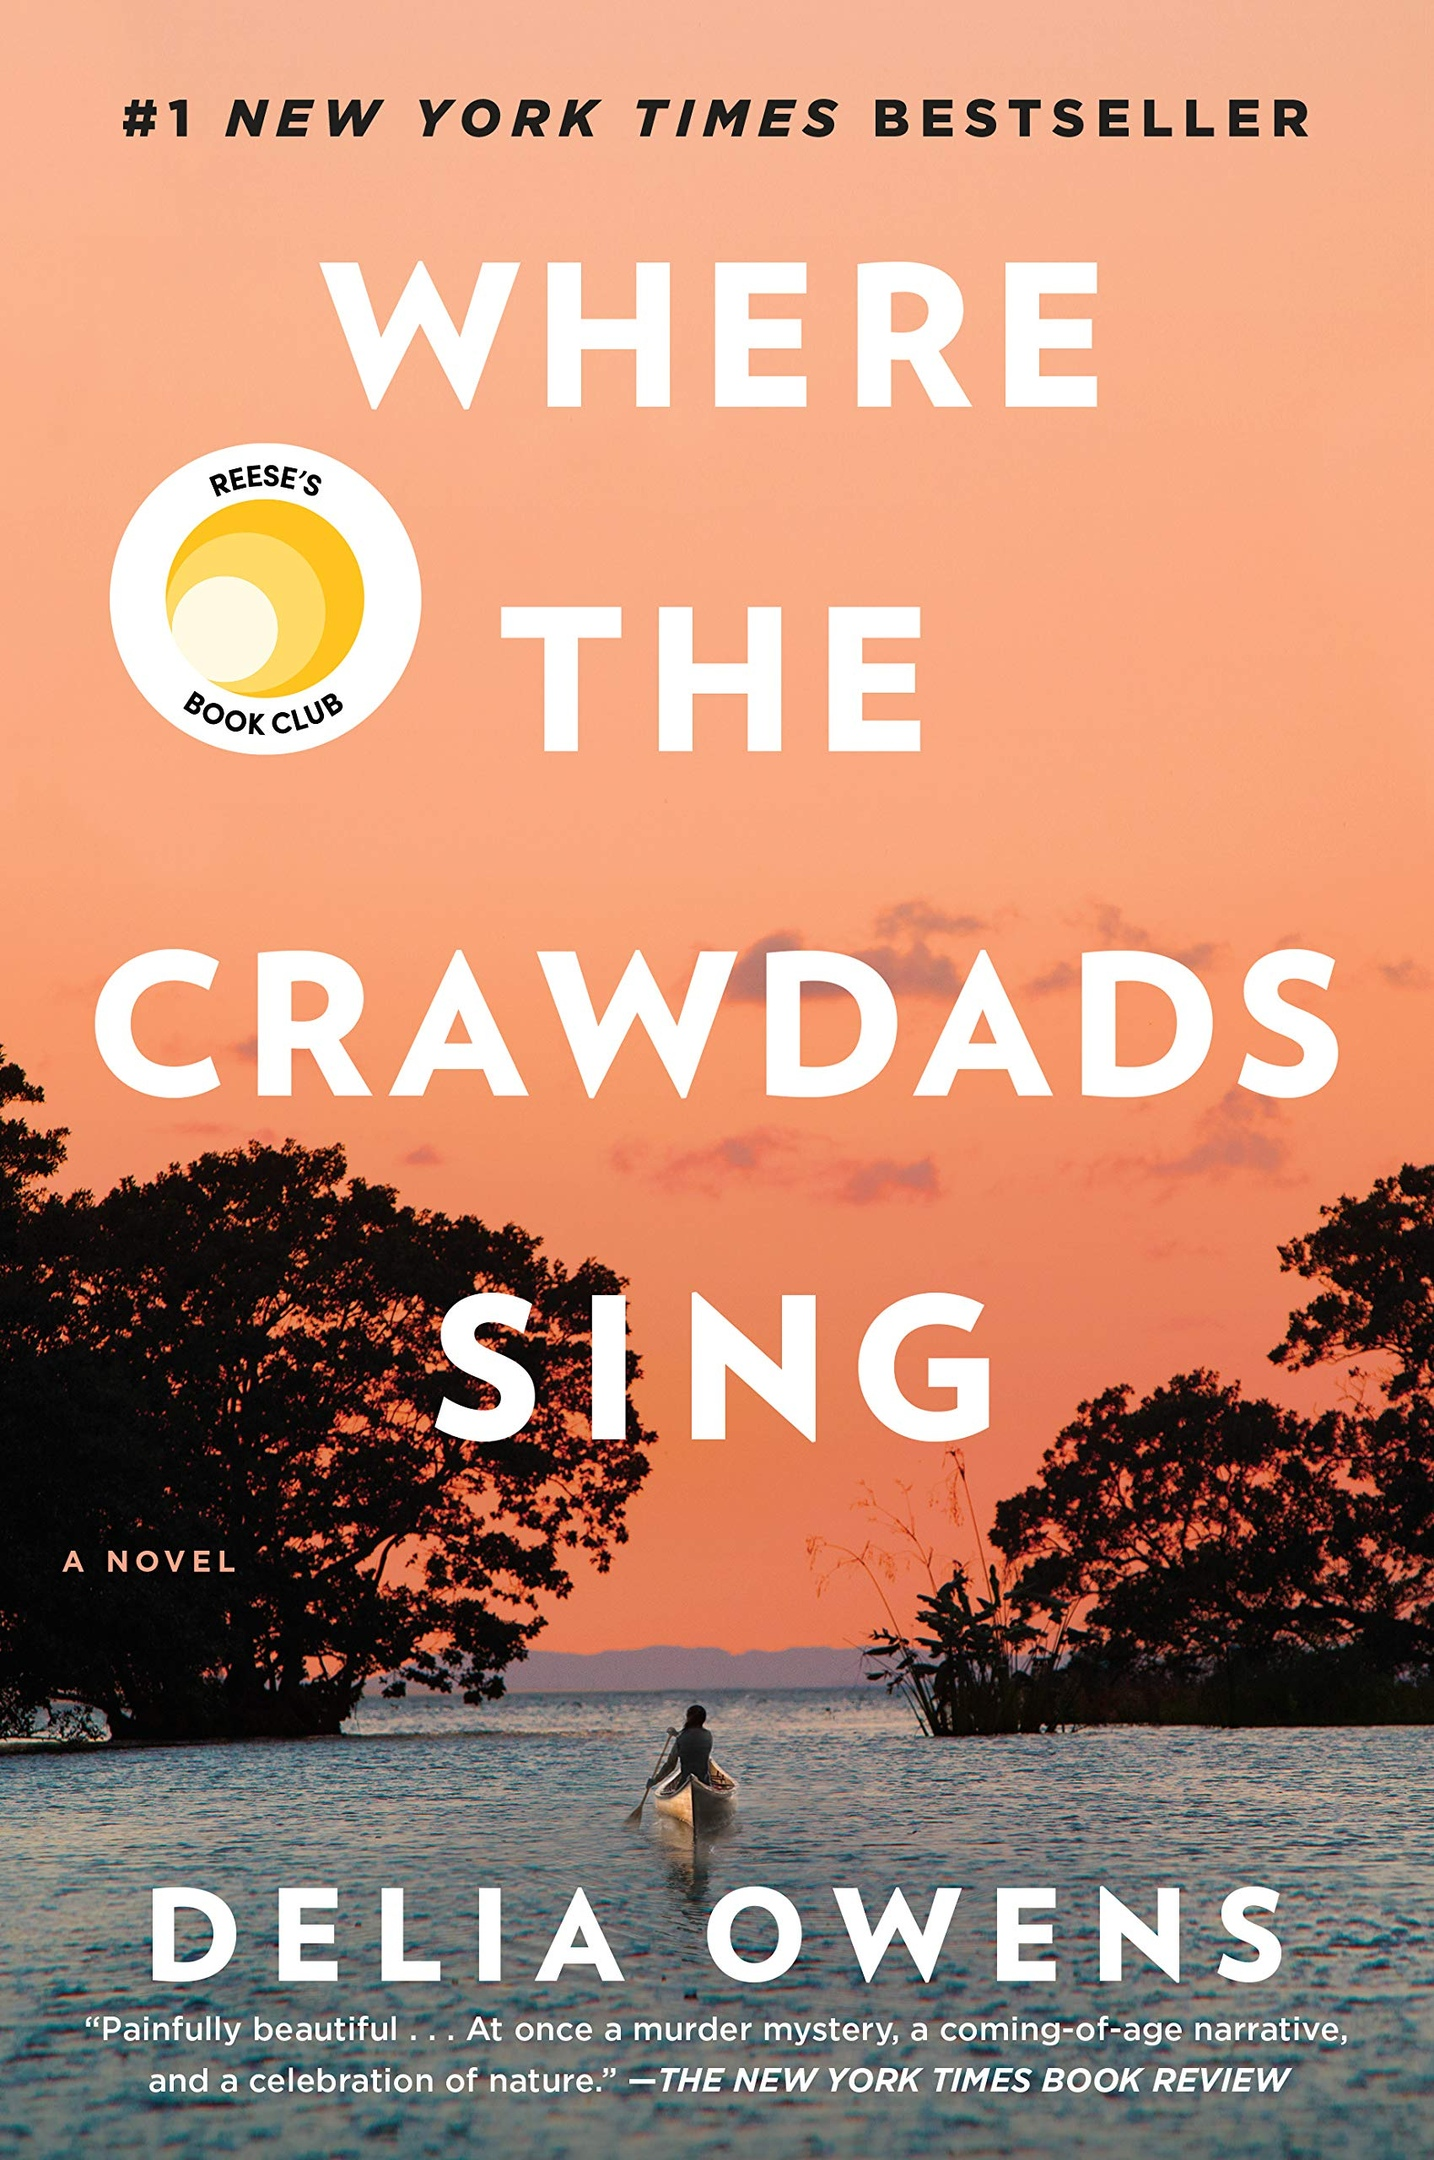 Delia Owens – Where The Crawdads Sing